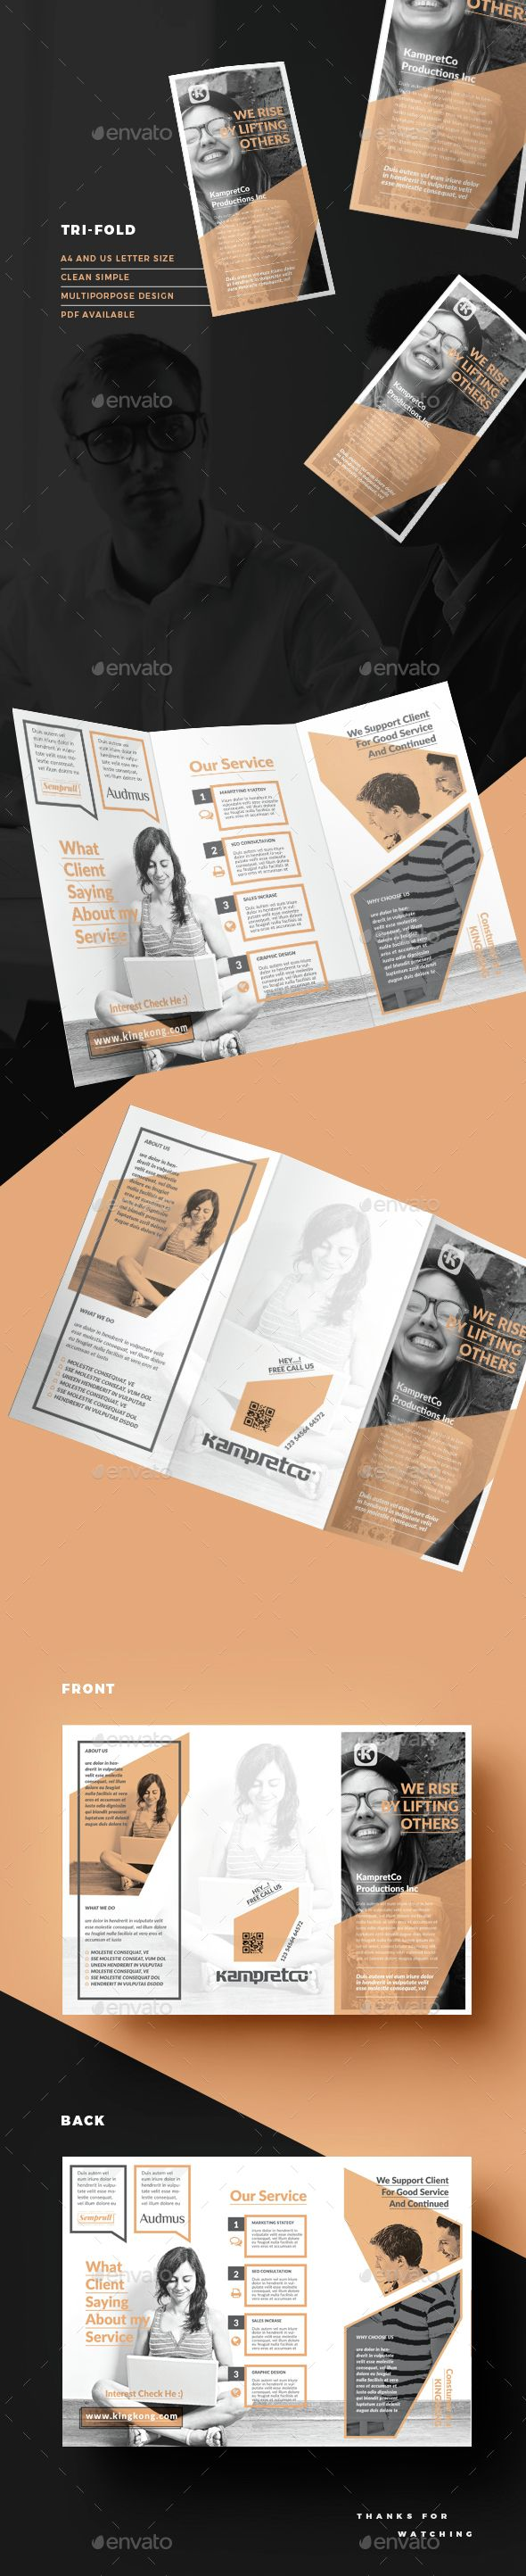 Trifold Brochure Template InDesign INDD. Download here: http://graphicriver.net/item/trifold/14813143?ref=ksioks